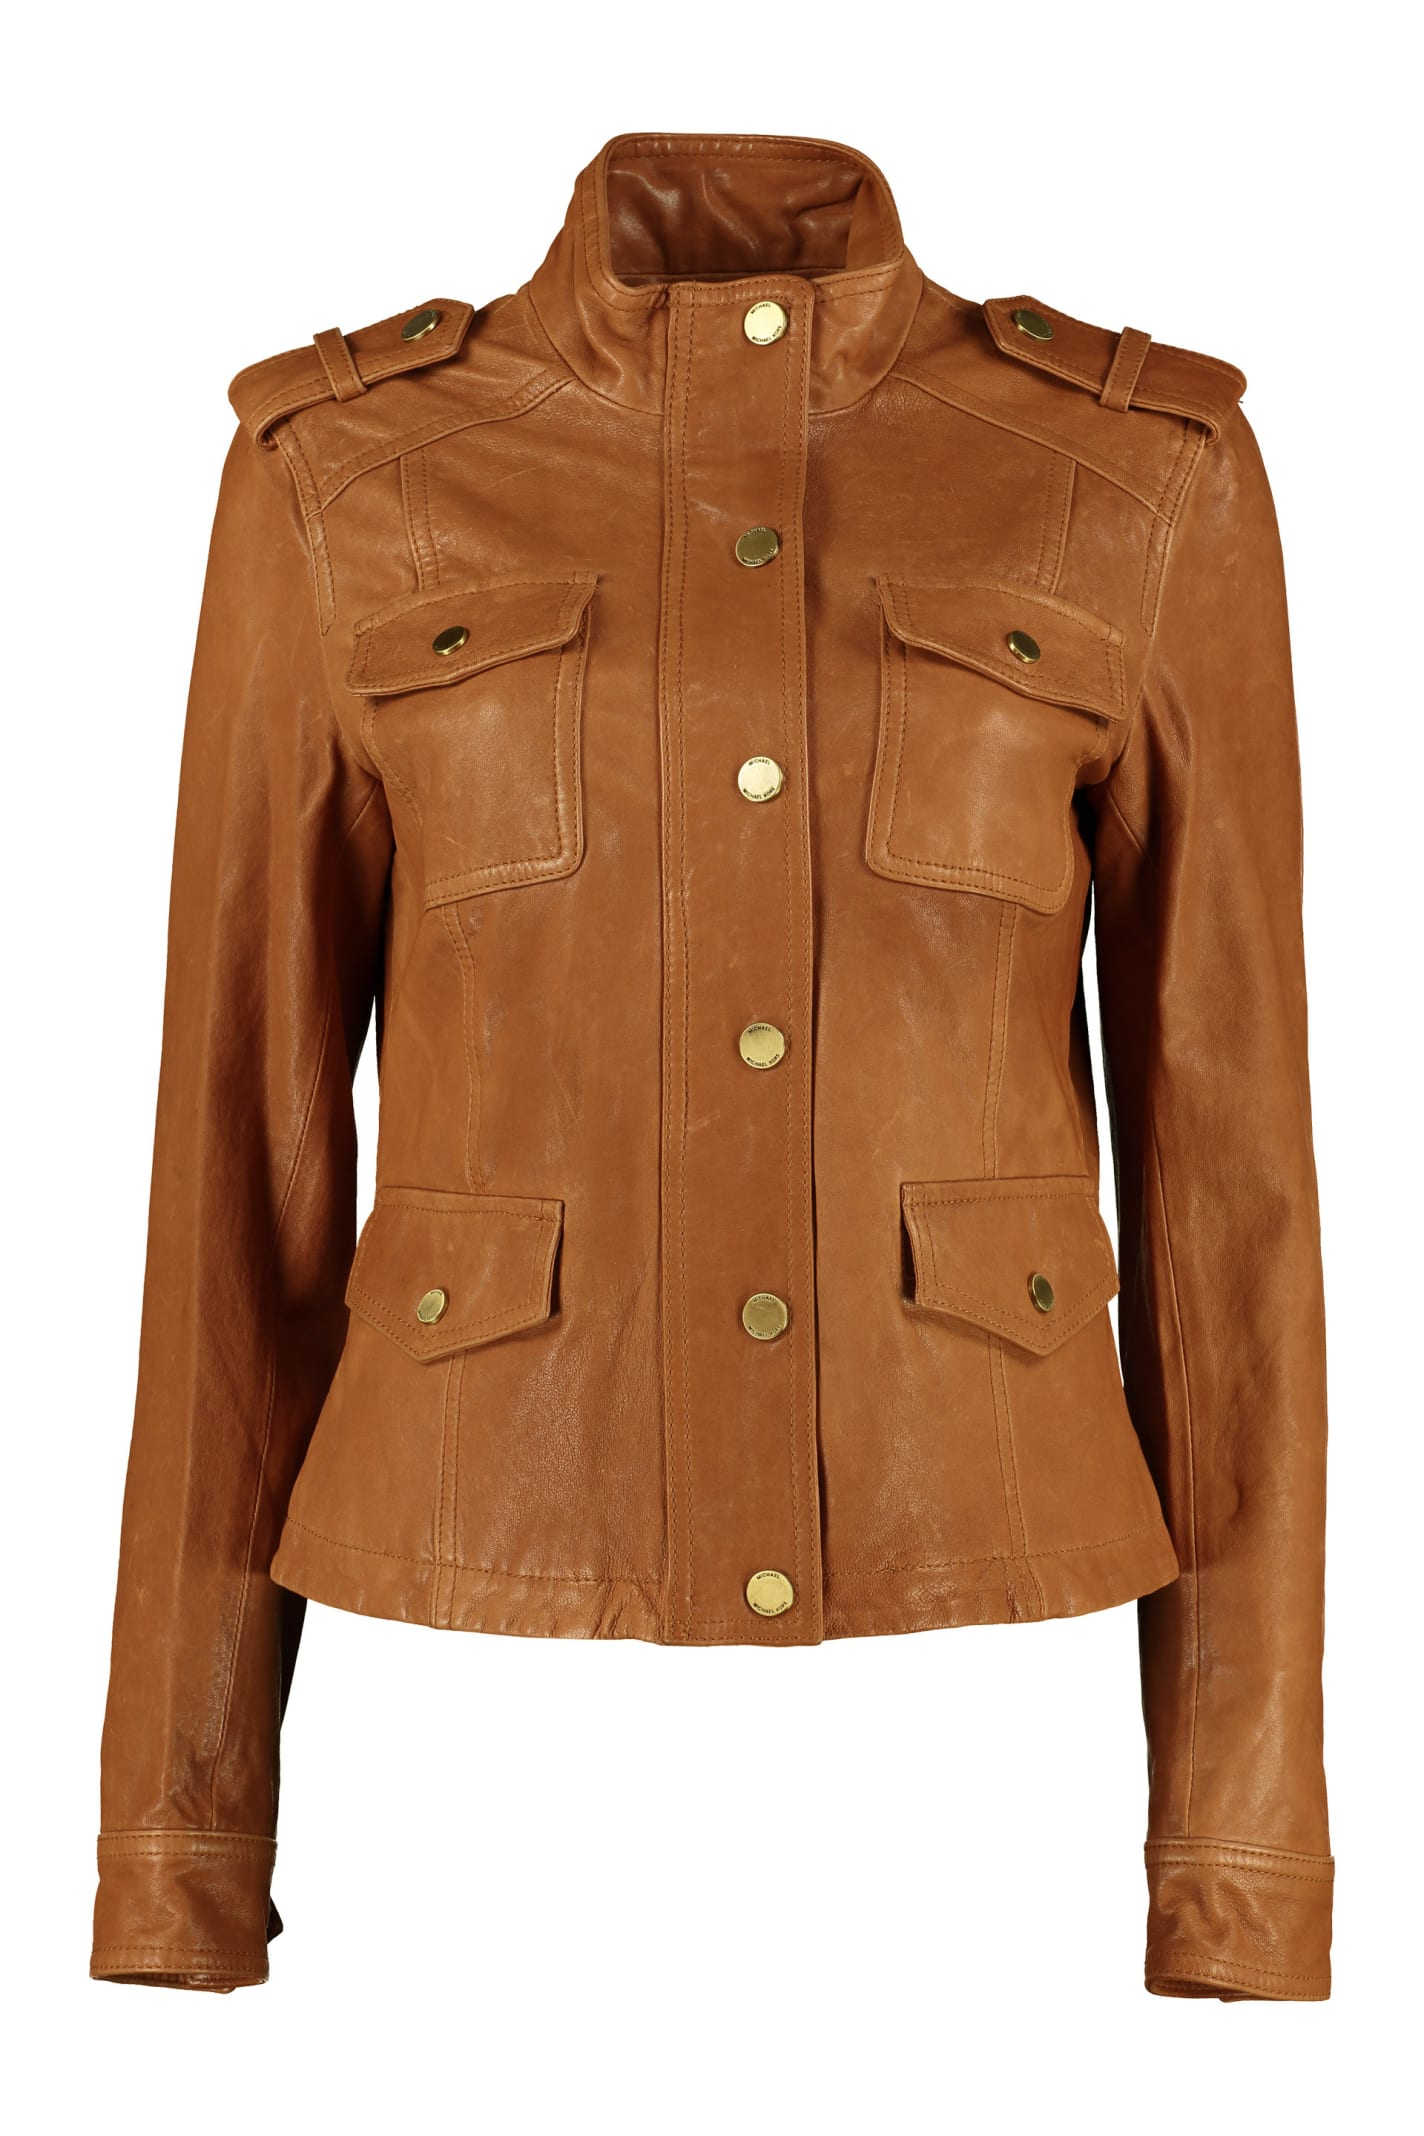 Michael Kors Lamb Leather Jacket